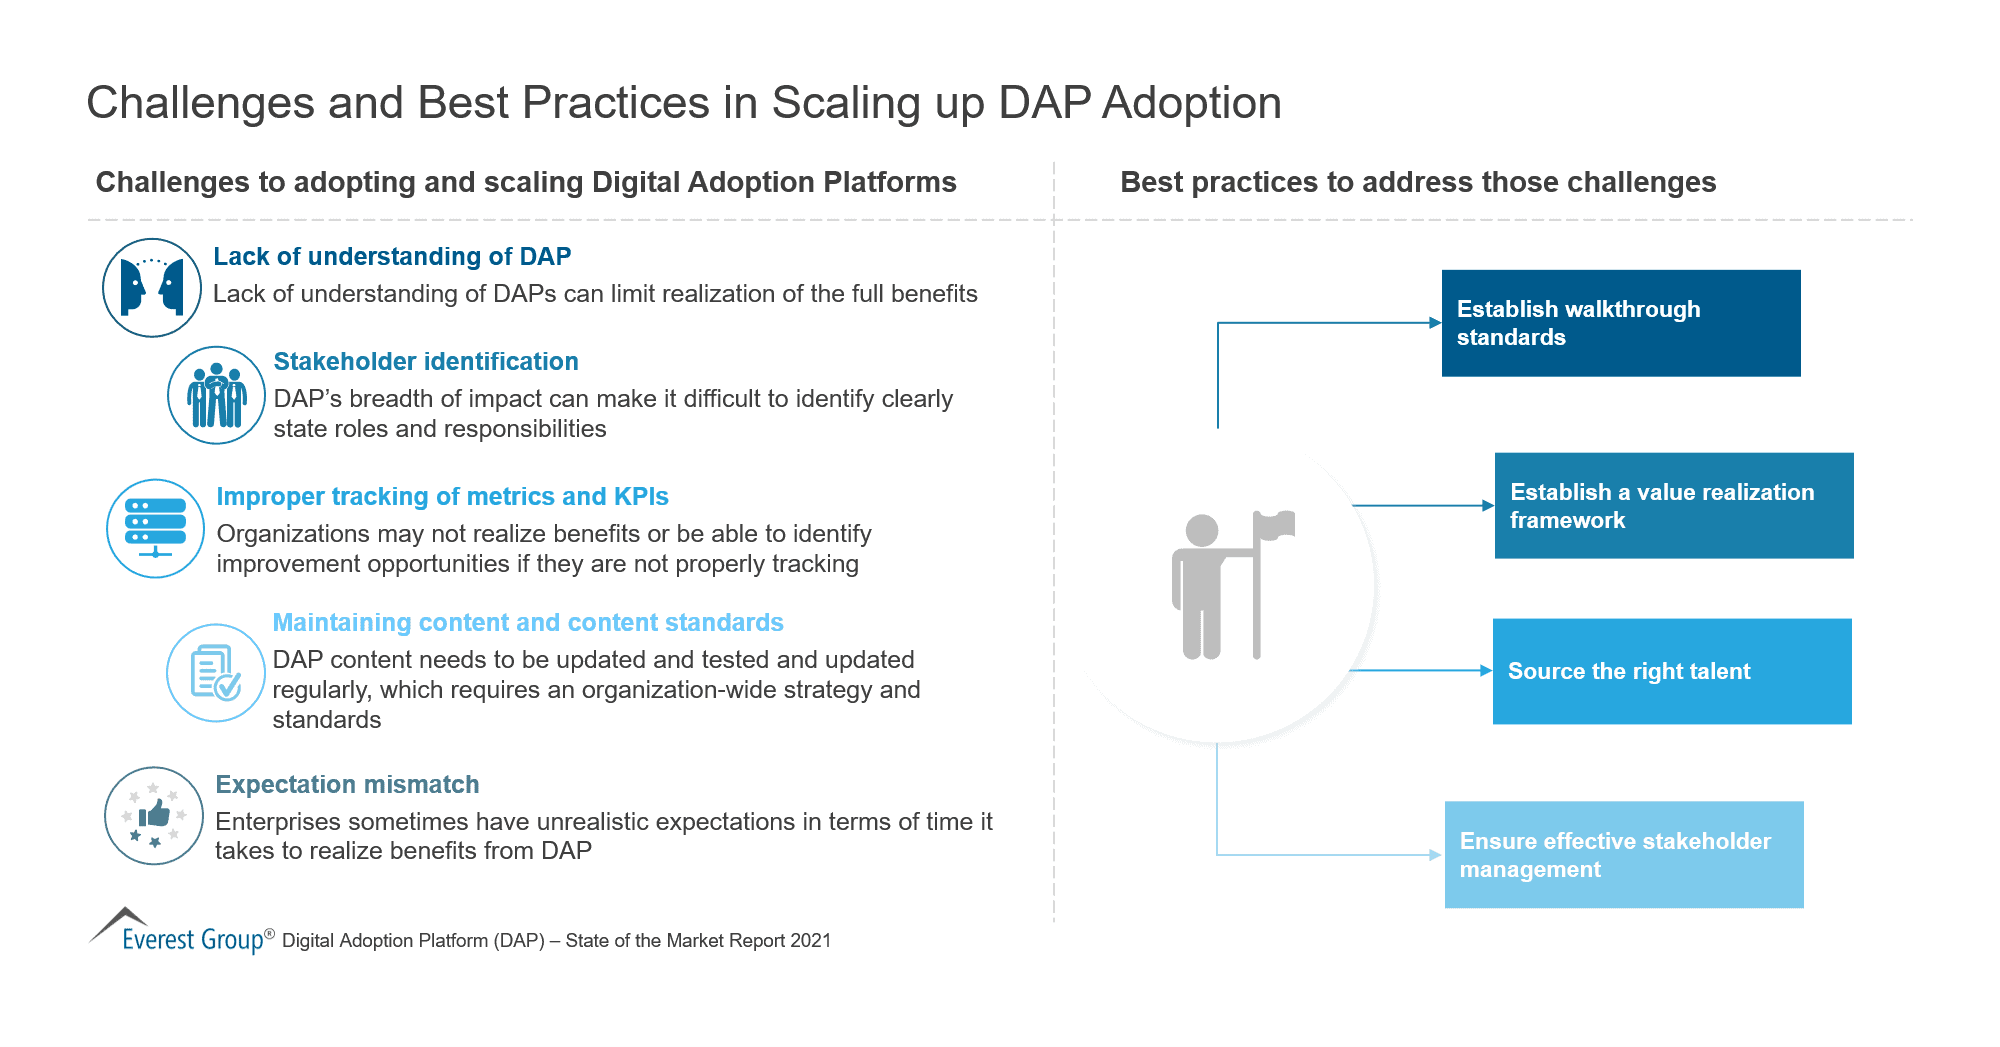 Challenges and Best Practices in Scaling up DAP Adoption